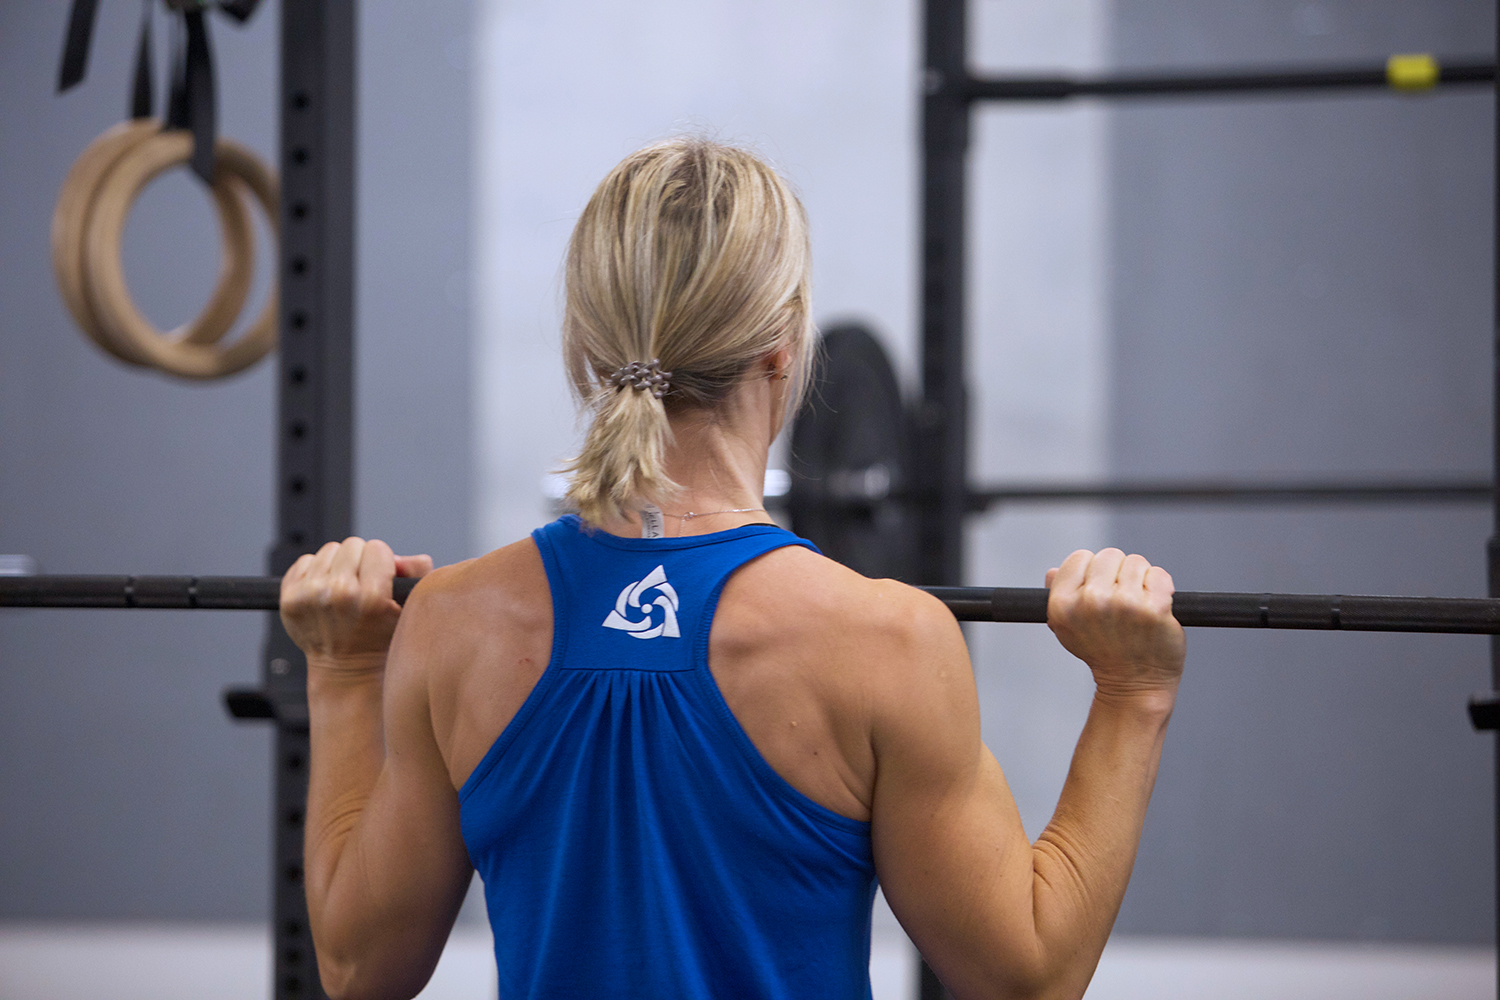 I have CrossFit experience -